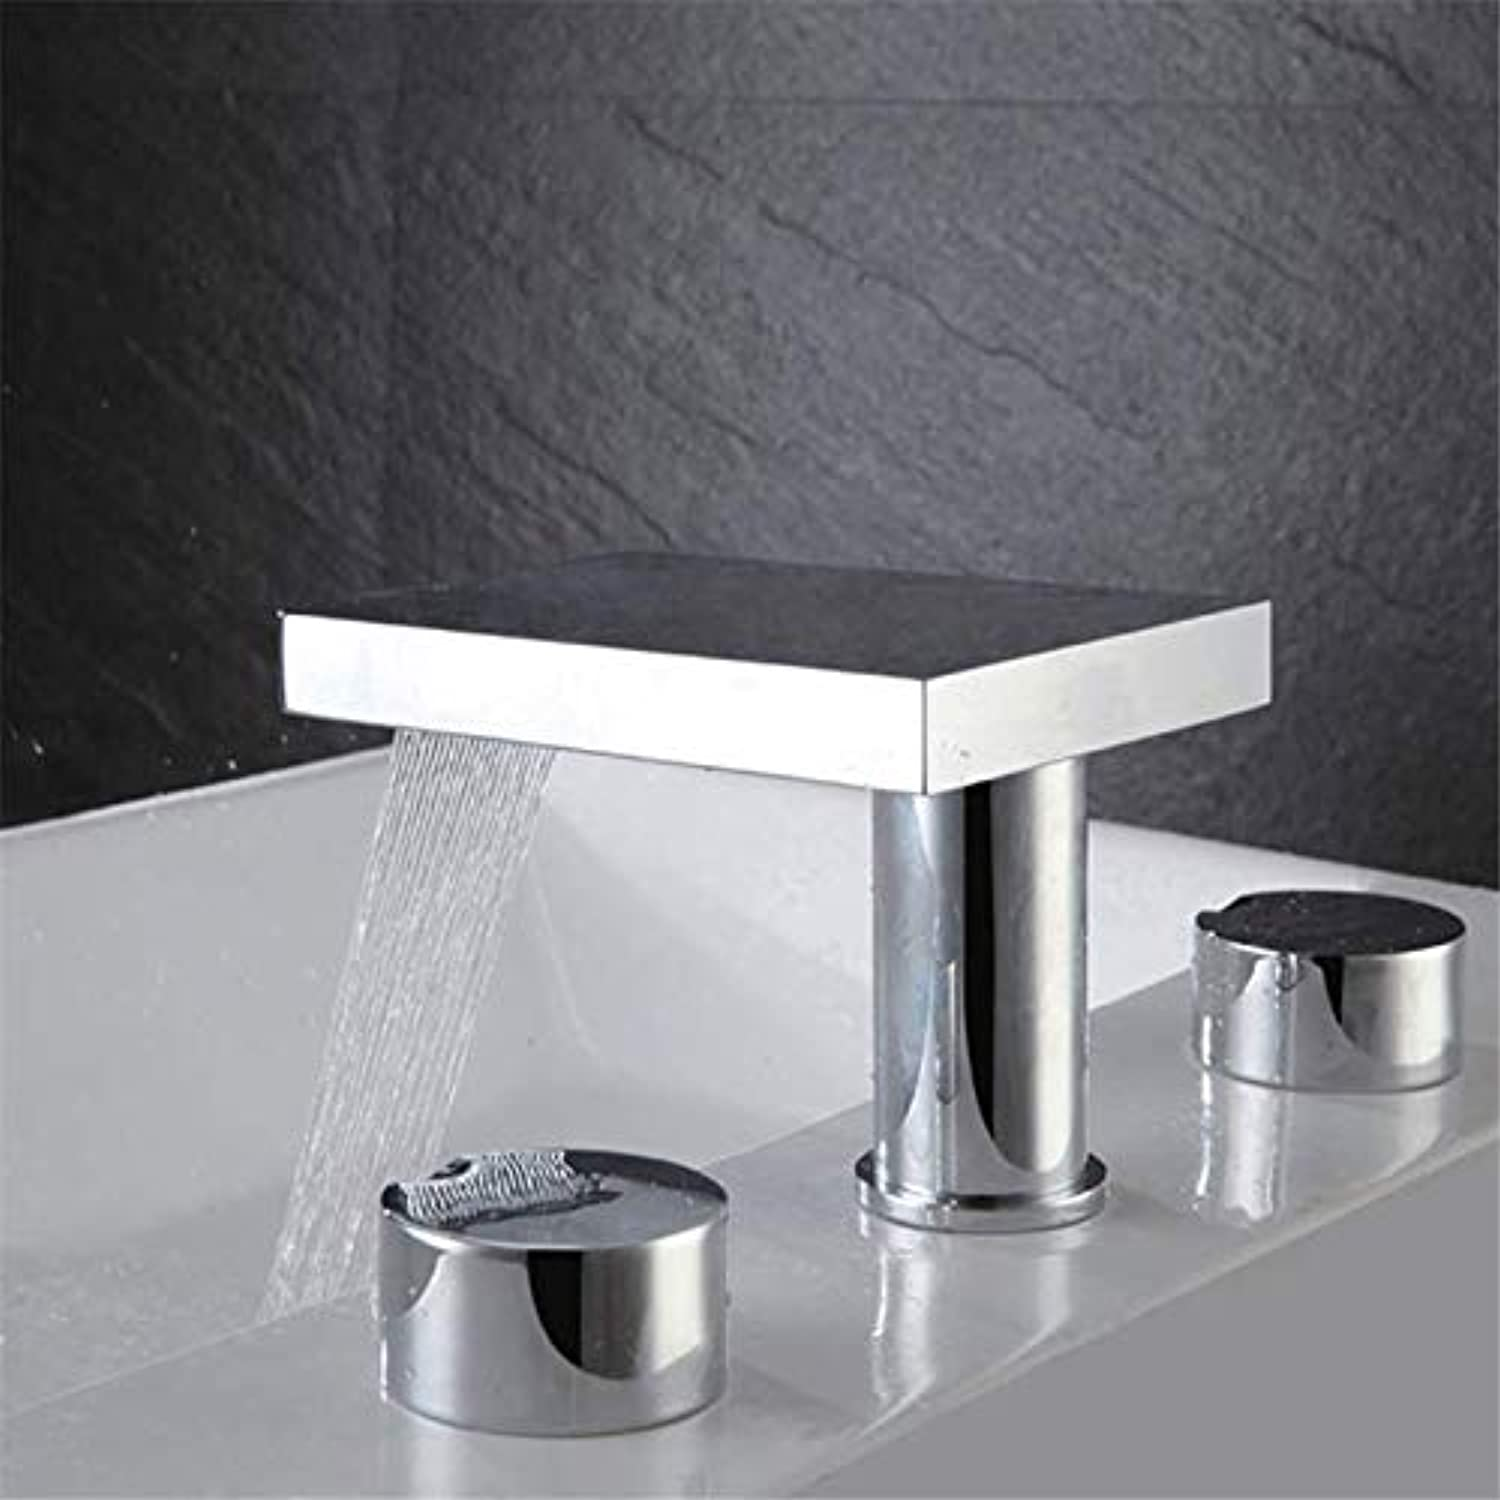 Modern Stylish Faucet Deck Mountain Waterfall Basin Mixer Bathroom with Two Handles a Waterfall Out of The Water